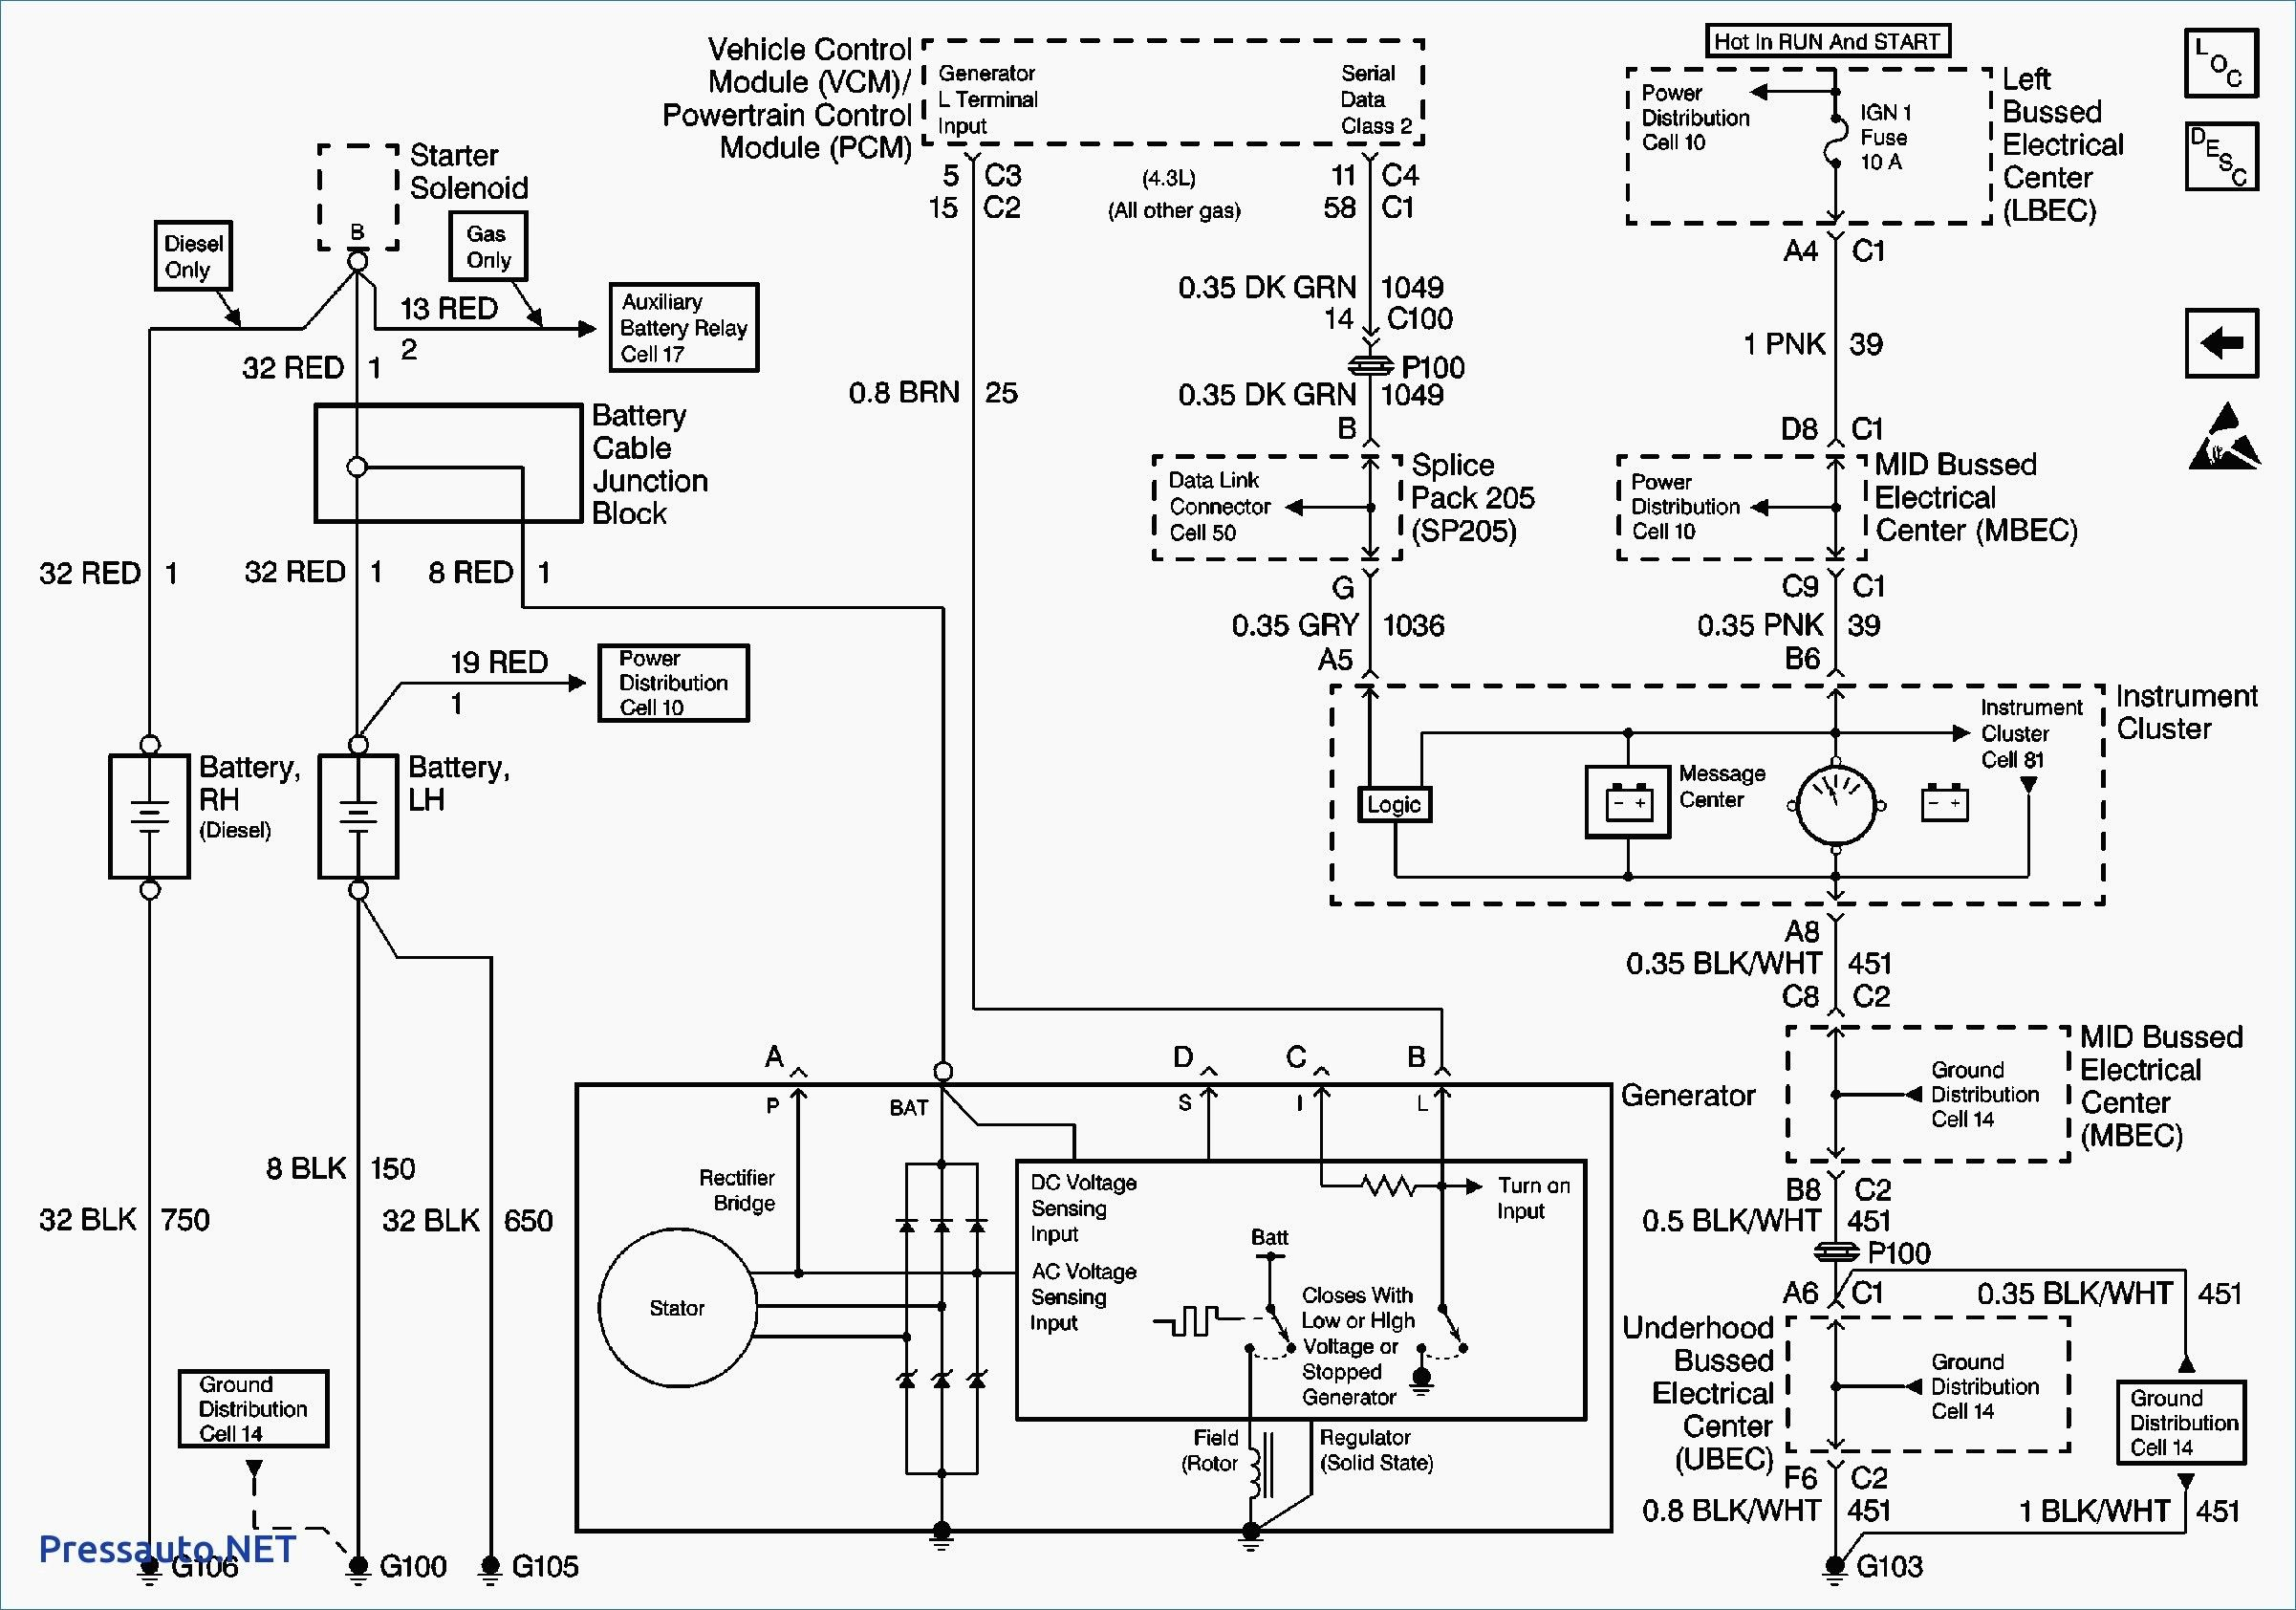 2005 Silverado Trailer Wiring Diagram New Di 2020